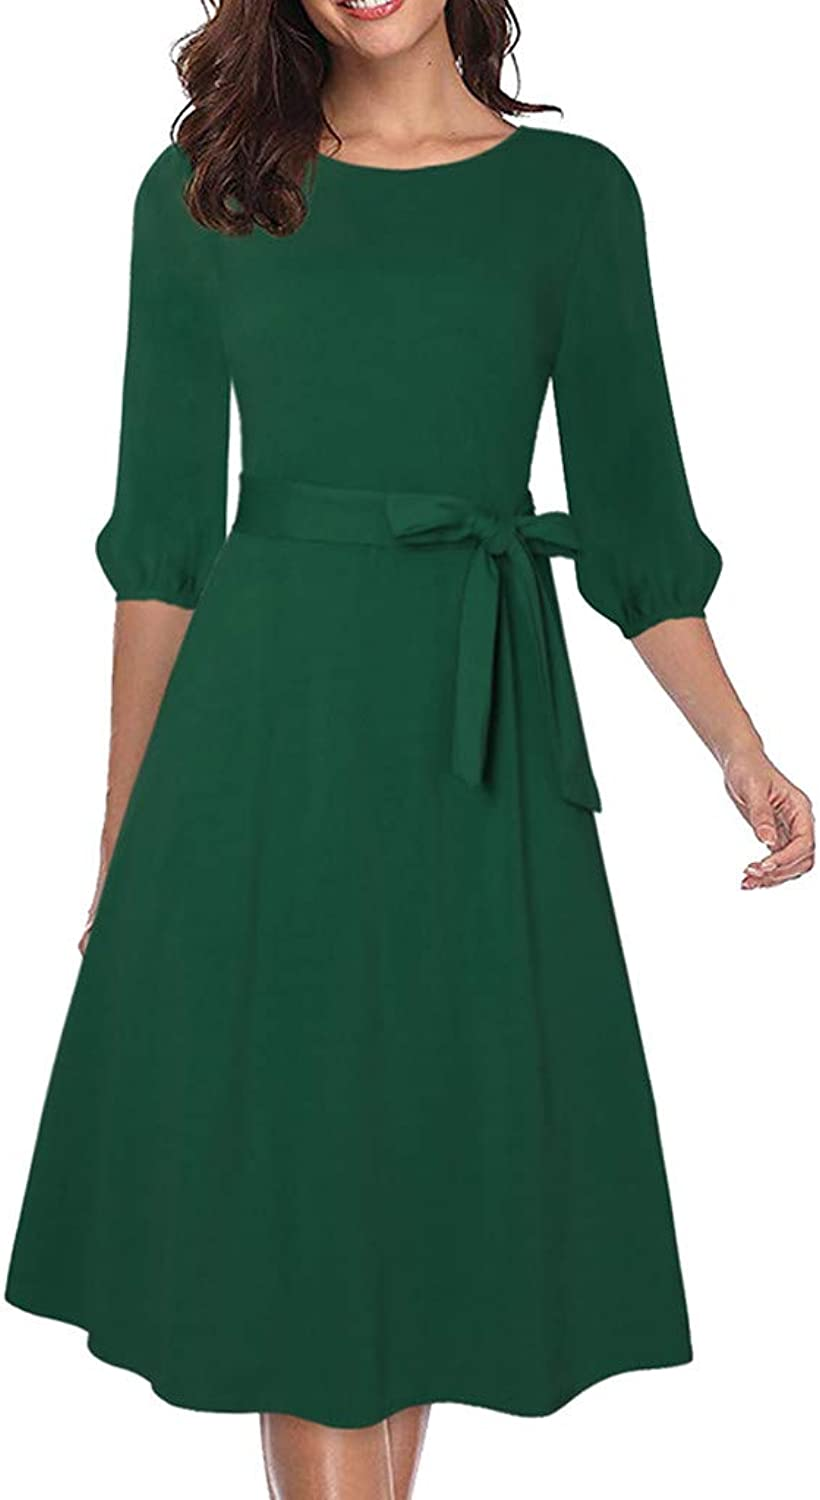 Ximandi Women's Solid O Neck Short Sleeve Casual Swing Midi Dress with Belt